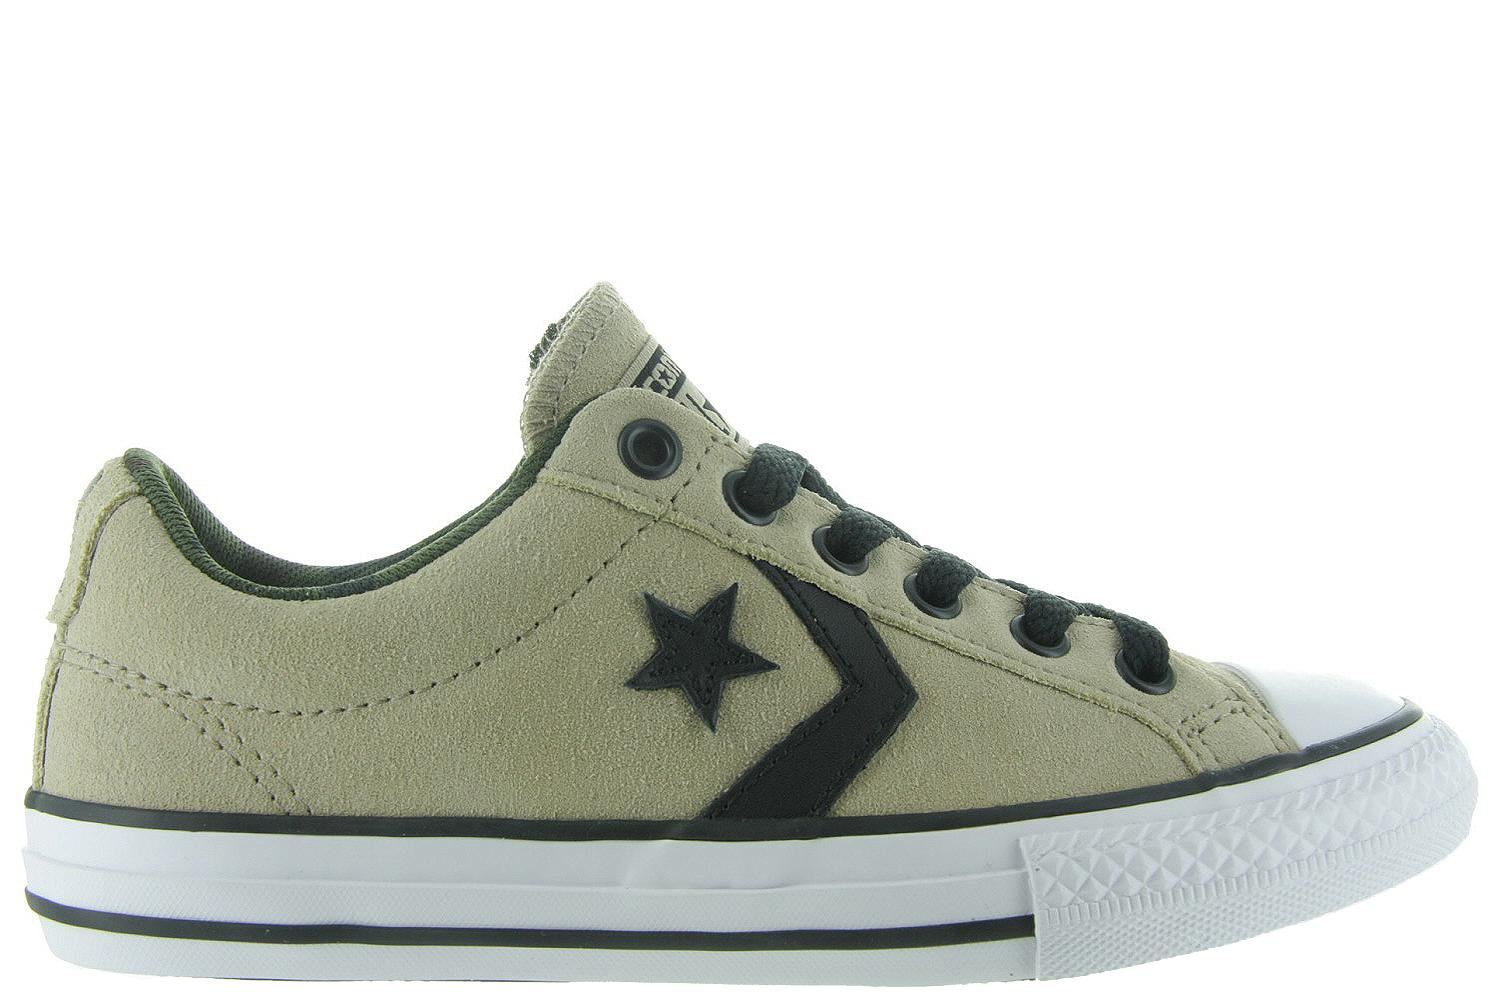 Beige All Star Sneakers Star Player 660002 Jongens Converse Kinderschoenen